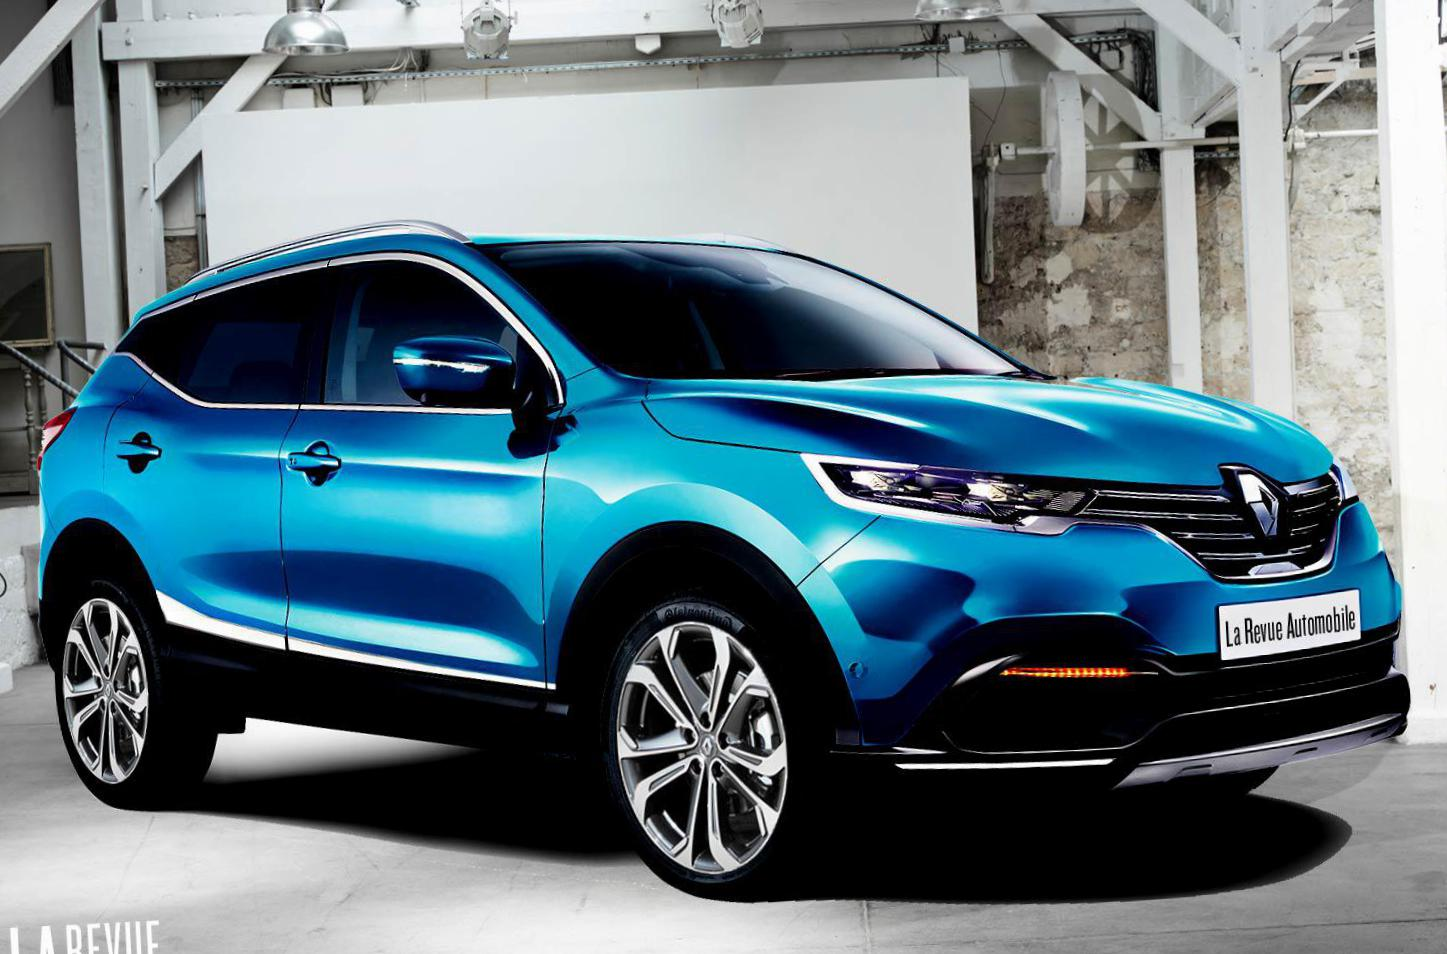 Renault Kadjar Photos And Specs Photo Renault Kadjar Tuning And 26 Perfect Photos Of Renault Kadjar